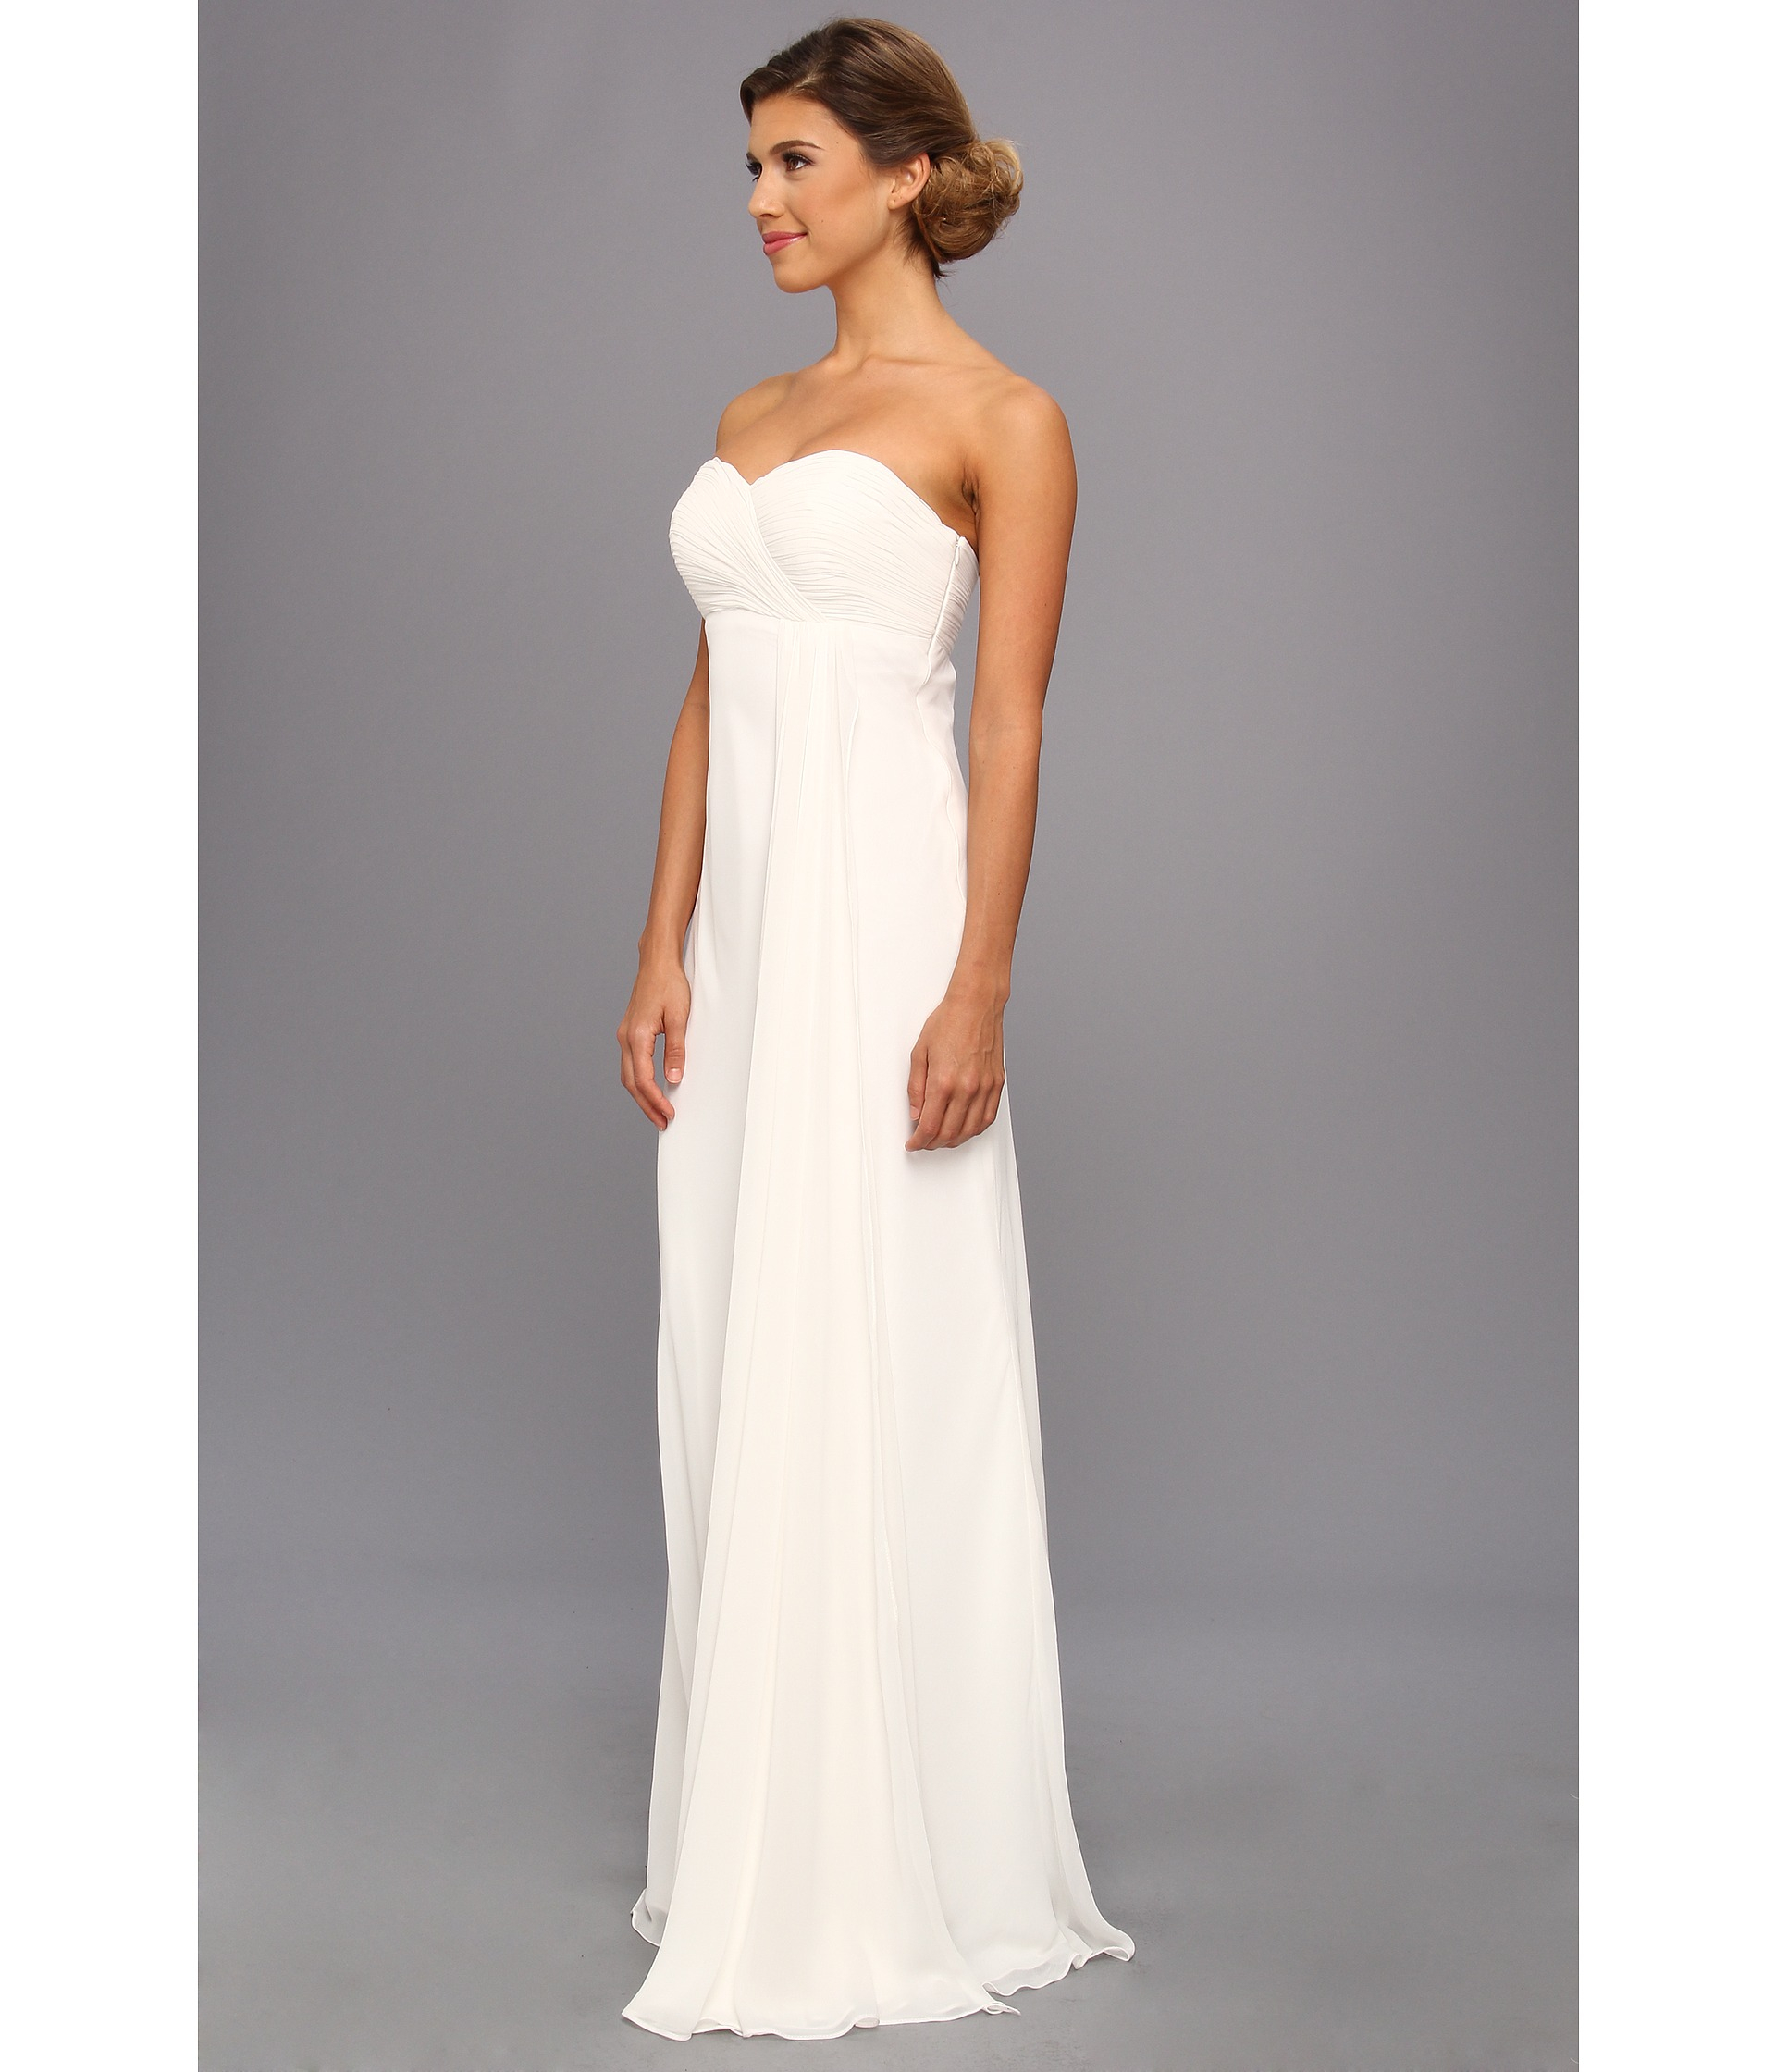 Faviana Strapless Ruched Chiffon Gown 7339 in White | Lyst